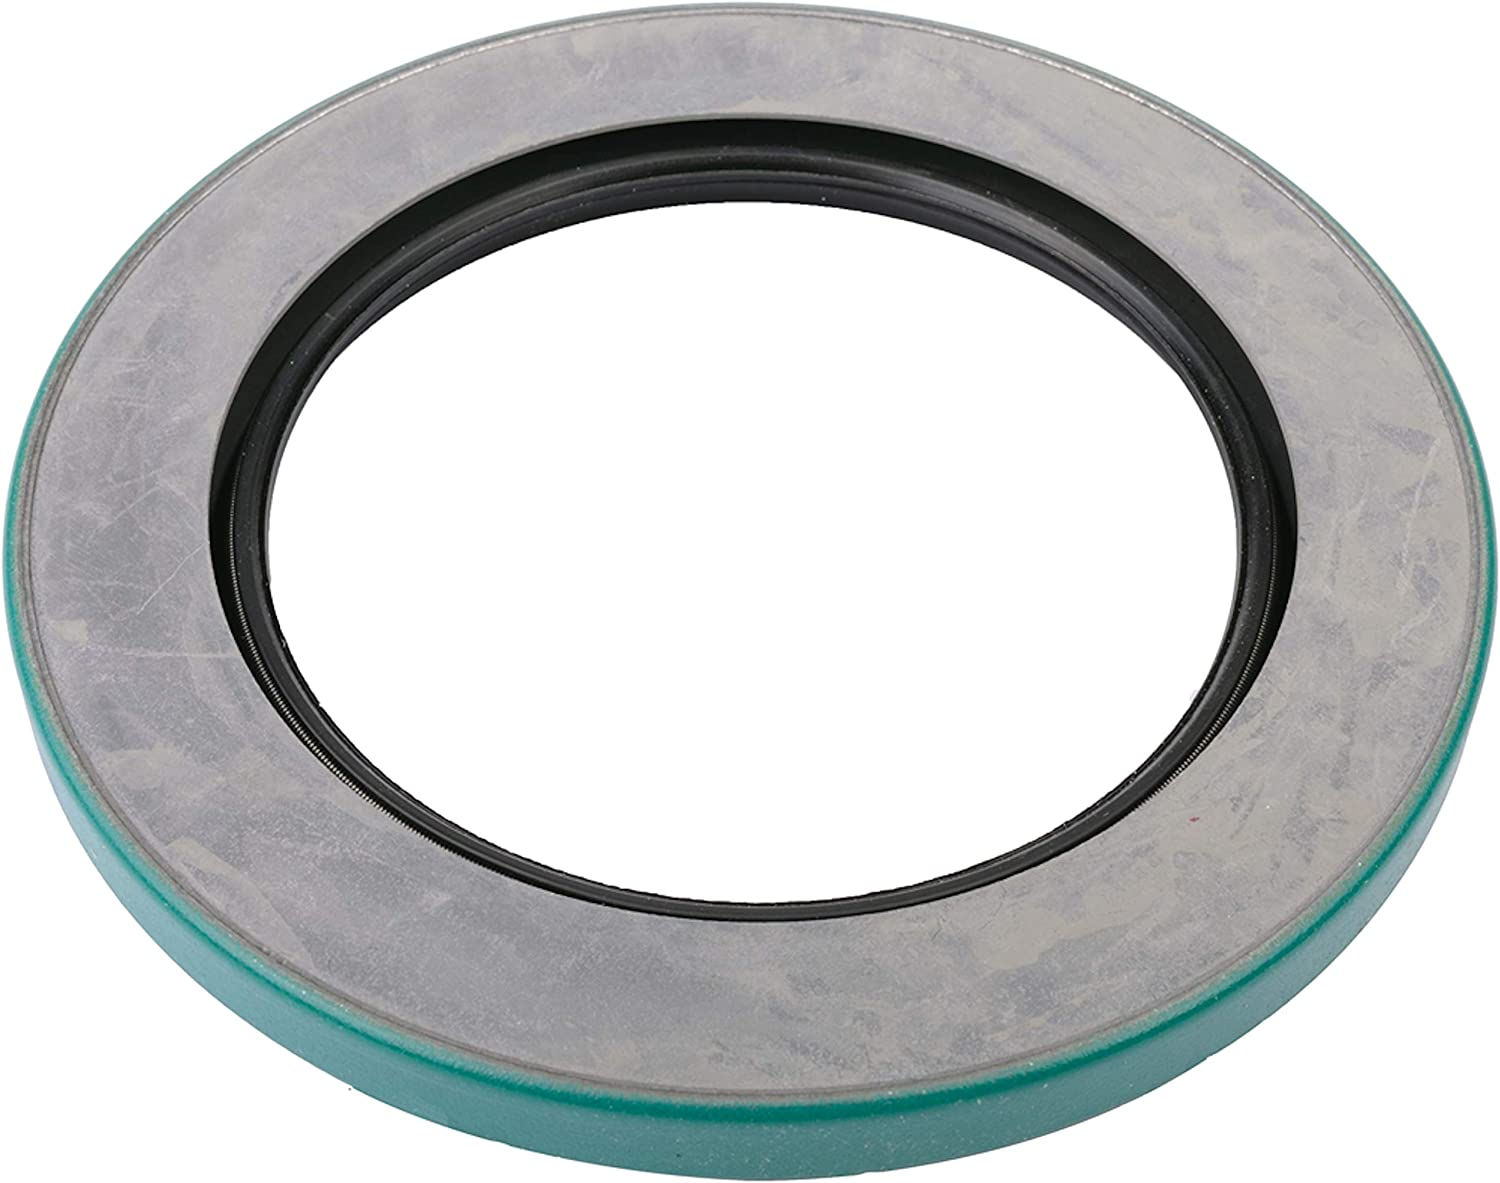 SKF 35086 LDS Small Super beauty product restock quality top Bore Seal Code Style Safety and trust Inch R Lip CRWH1